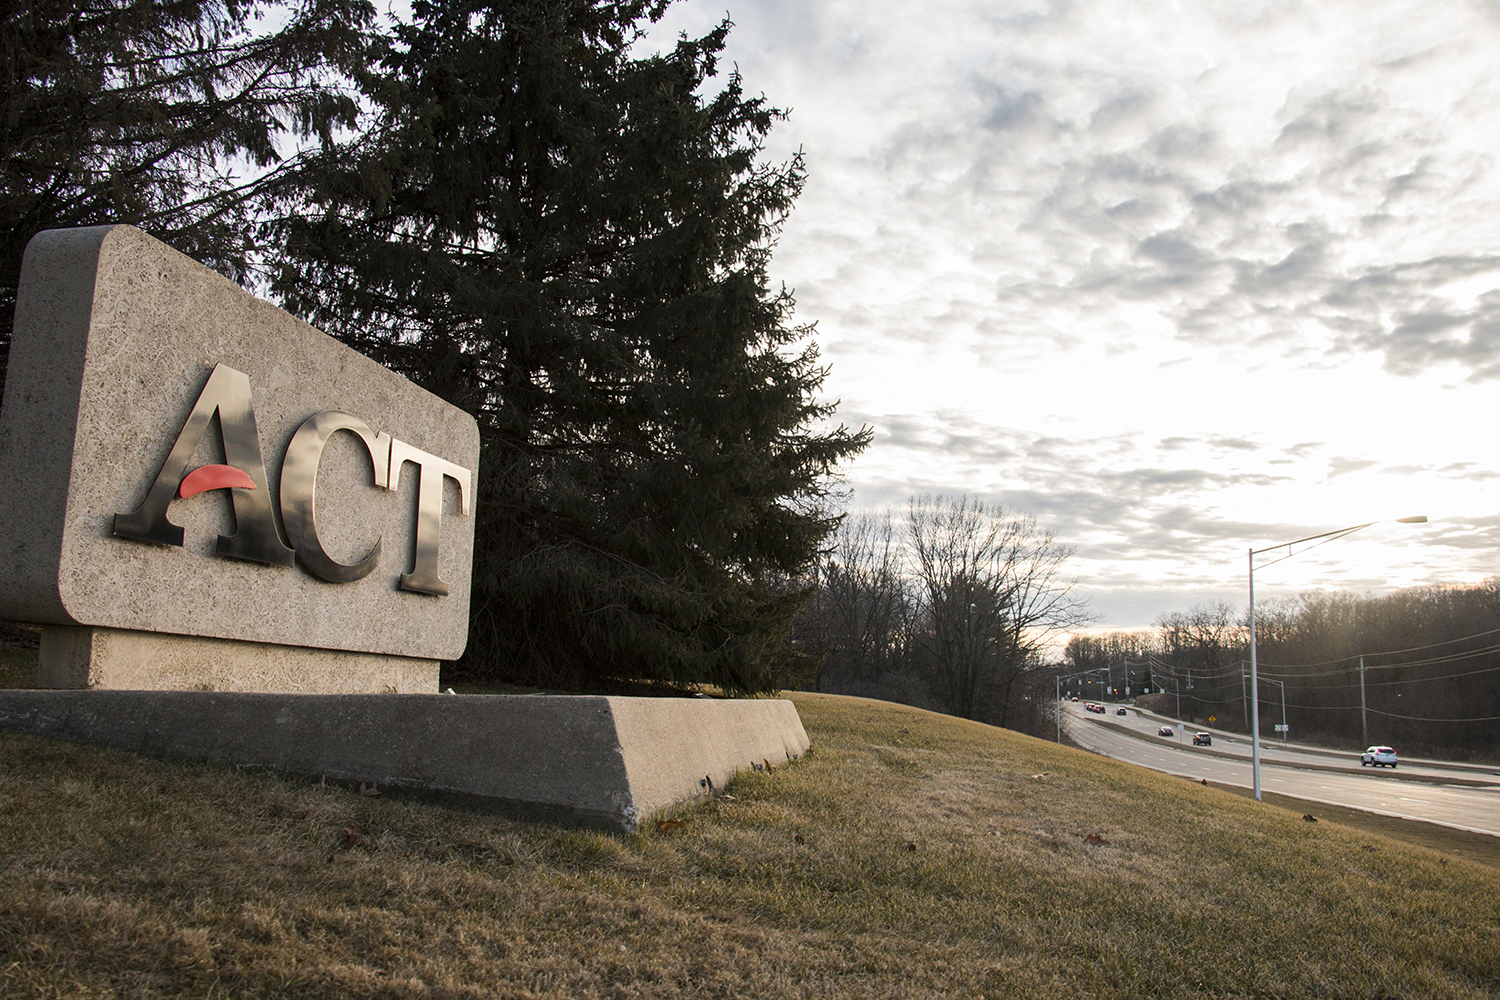 The ACT sign is seen outside of the ACT Headquarters on Monday, March 5, 2018. ACT offices are expected to experience upcoming lay-offs.